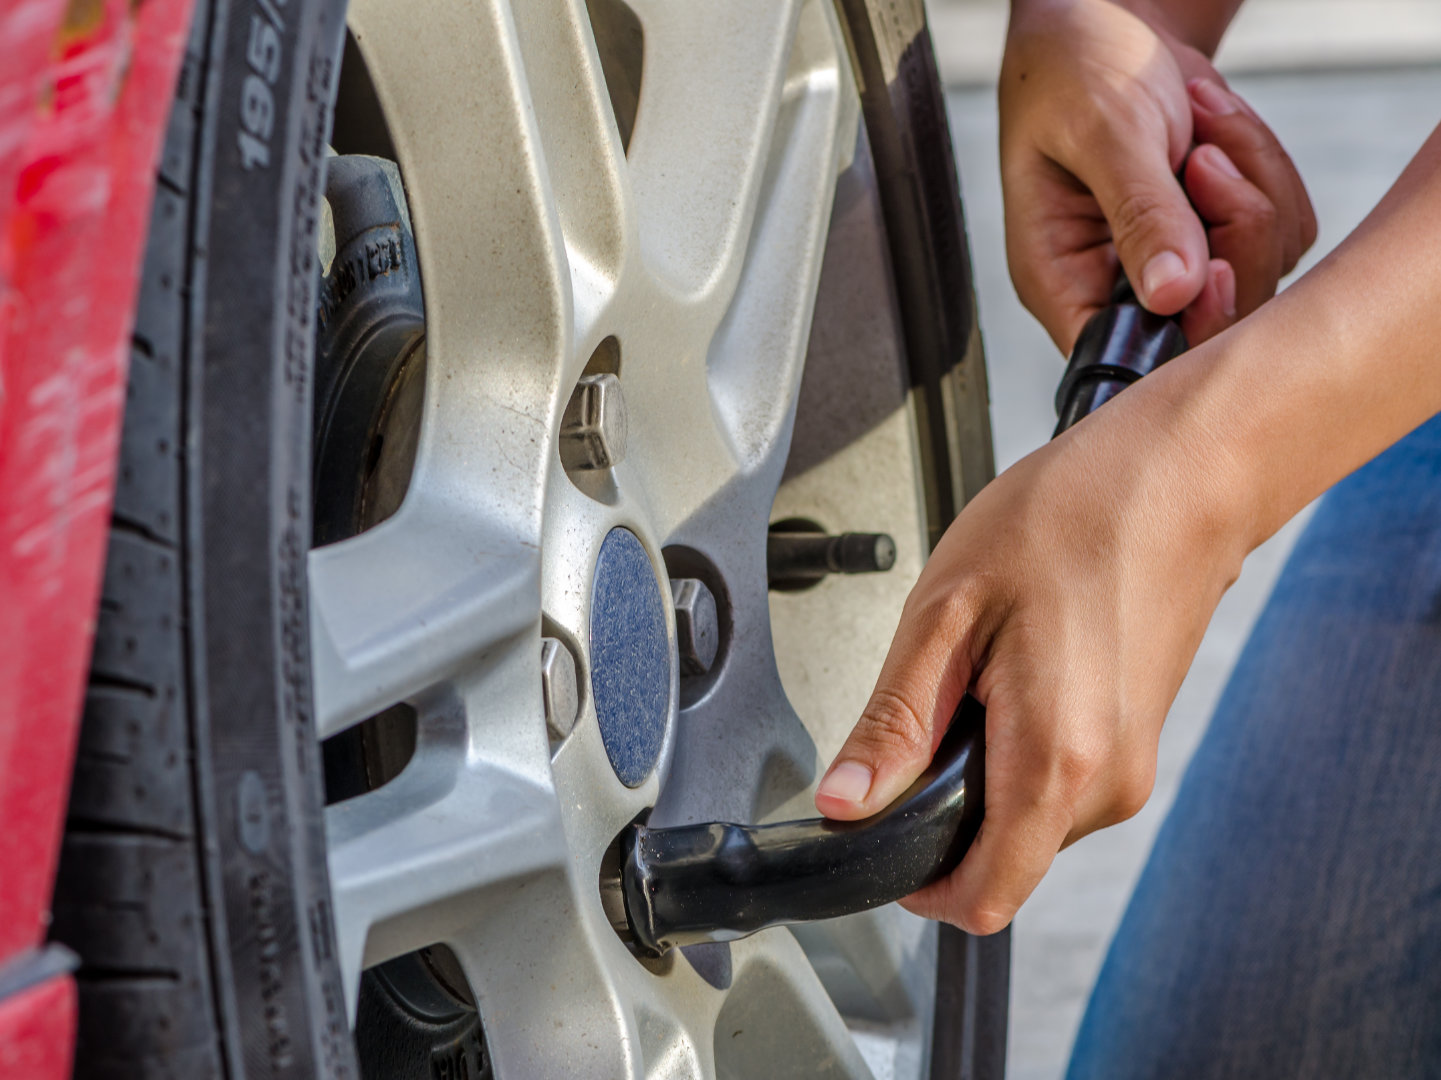 Why New Drivers Should Know How to Change a Flat Tire